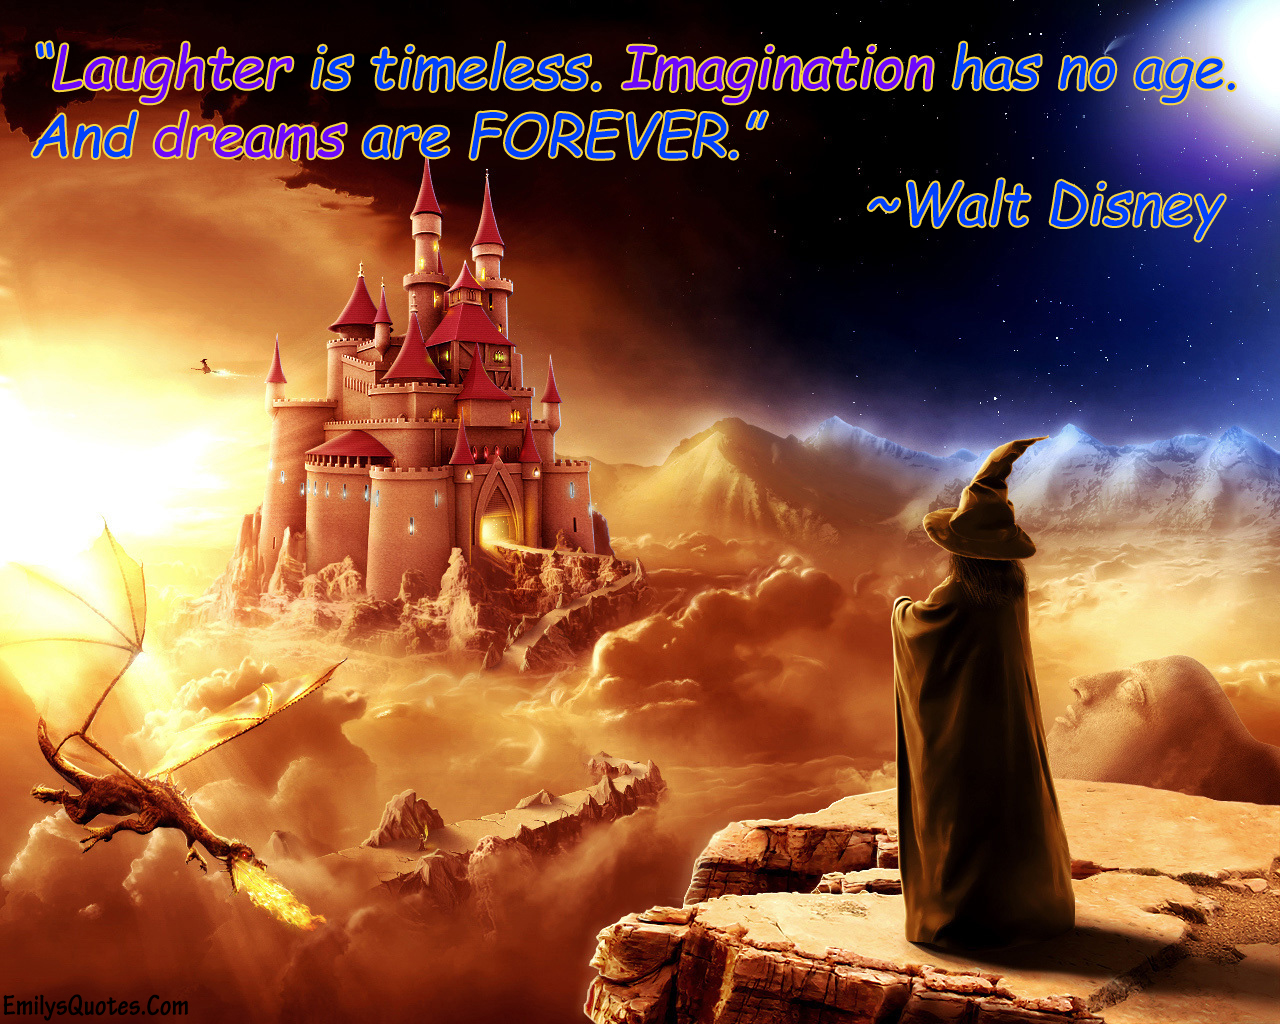 Walt Disney Quotes About Friendship Laughter Is Timelessimagination Has No Ageand Dreams Are